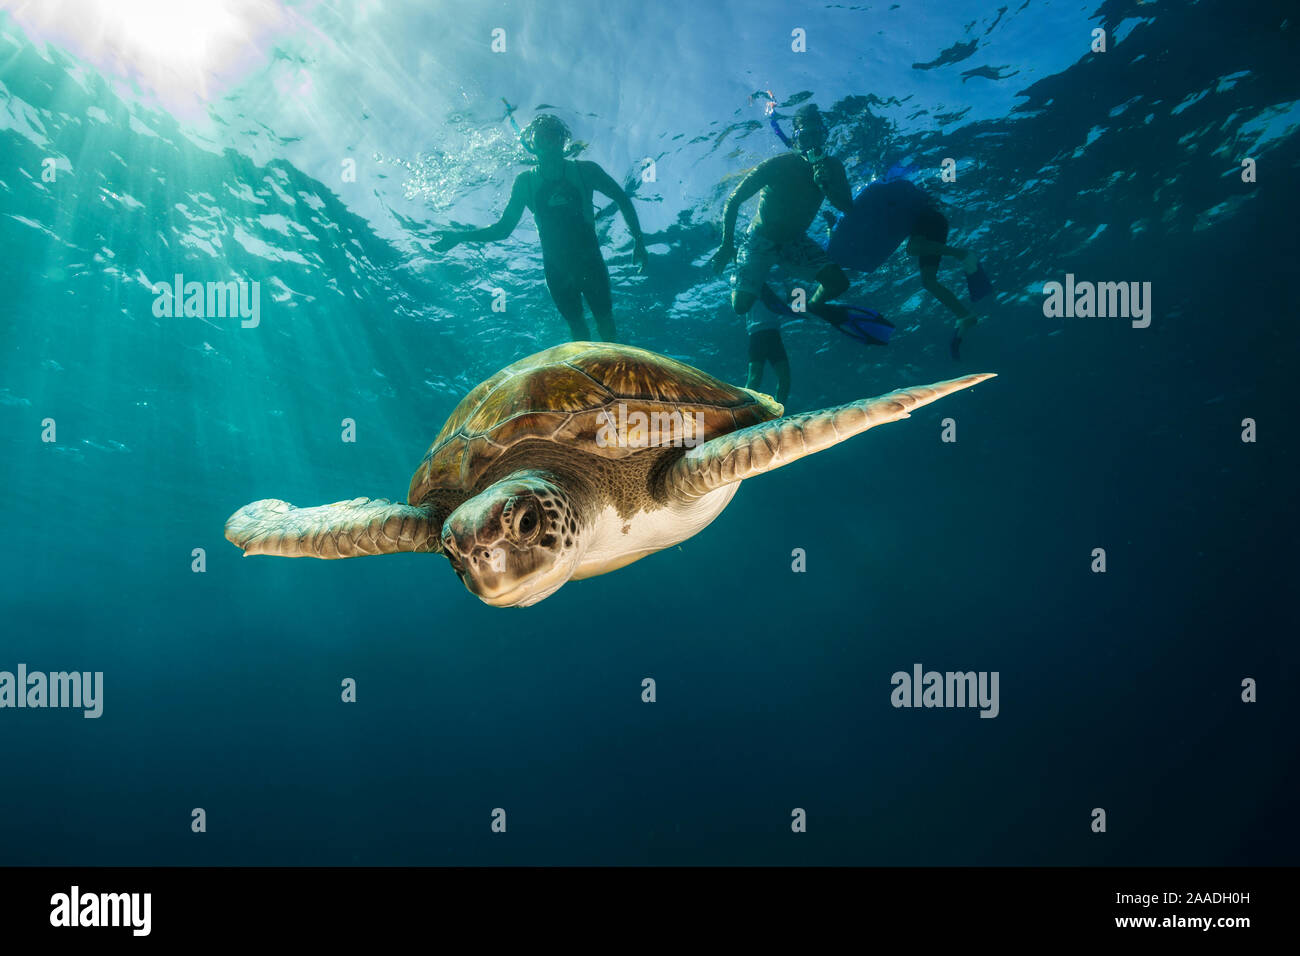 Green turtle (Chelonia mydas) swimming with snorkelers in the background, Canary Islands, Spain, July. Stock Photo